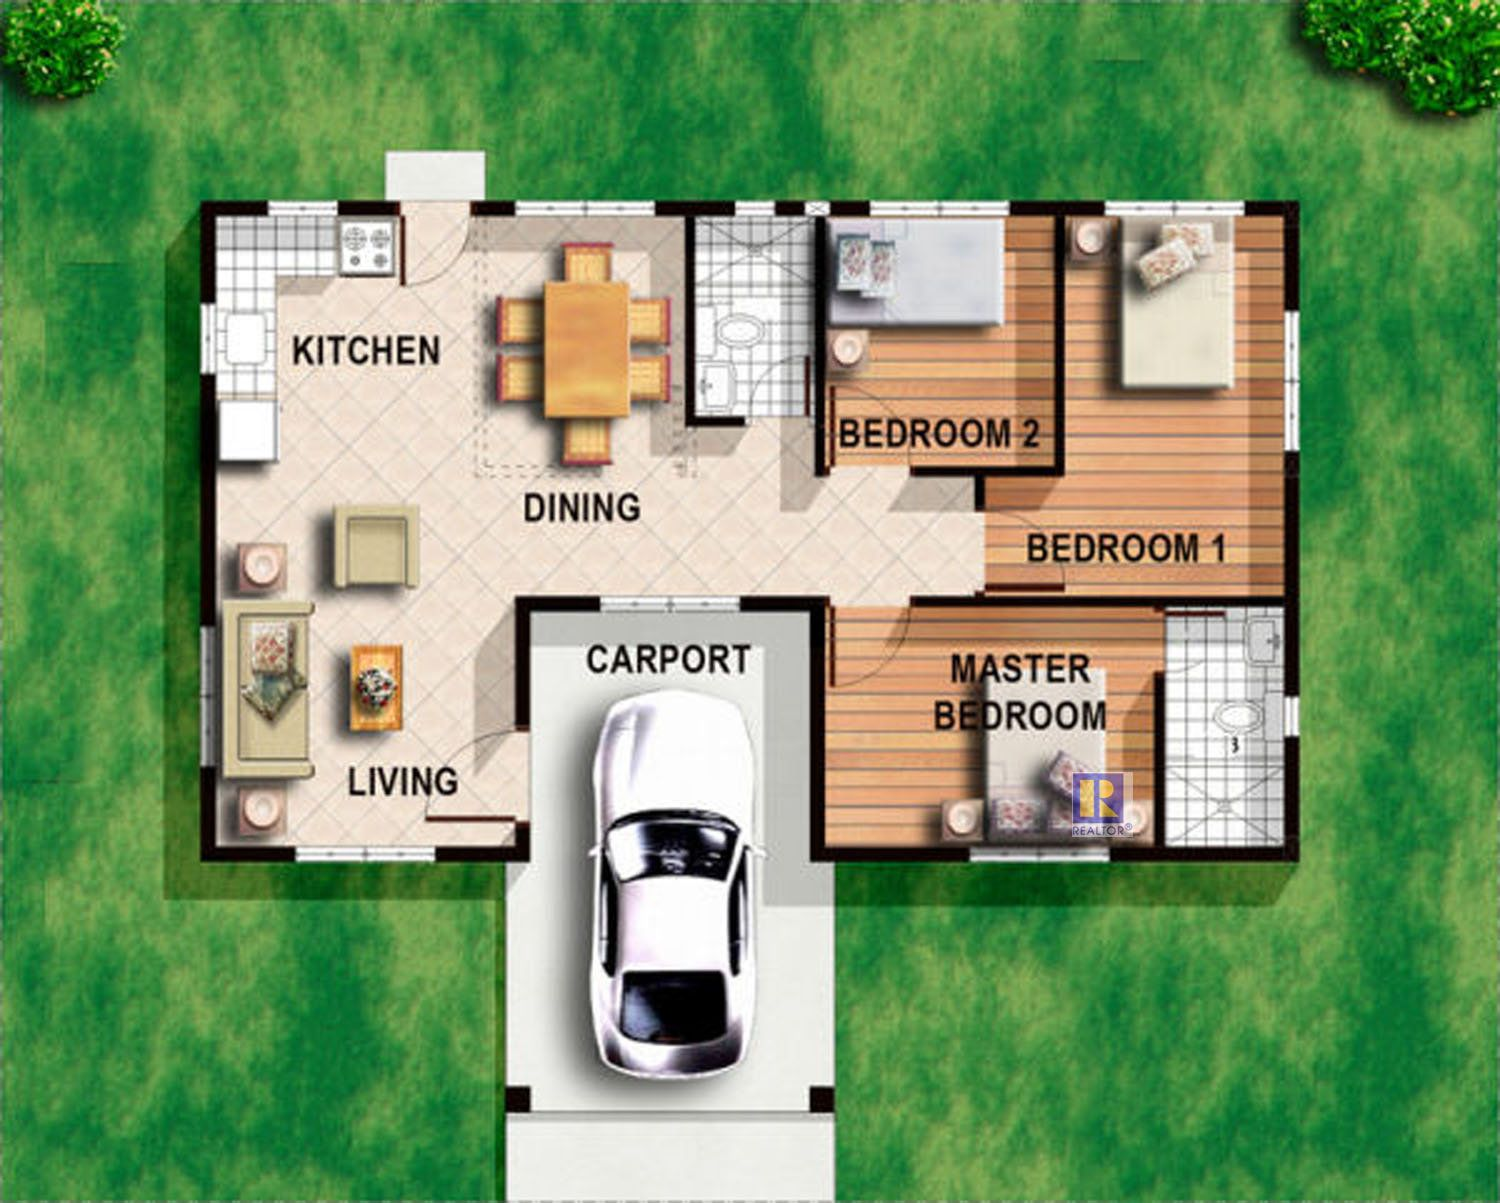 3 bedroom floor plan in philippines | design ideas 2017-2018 ...